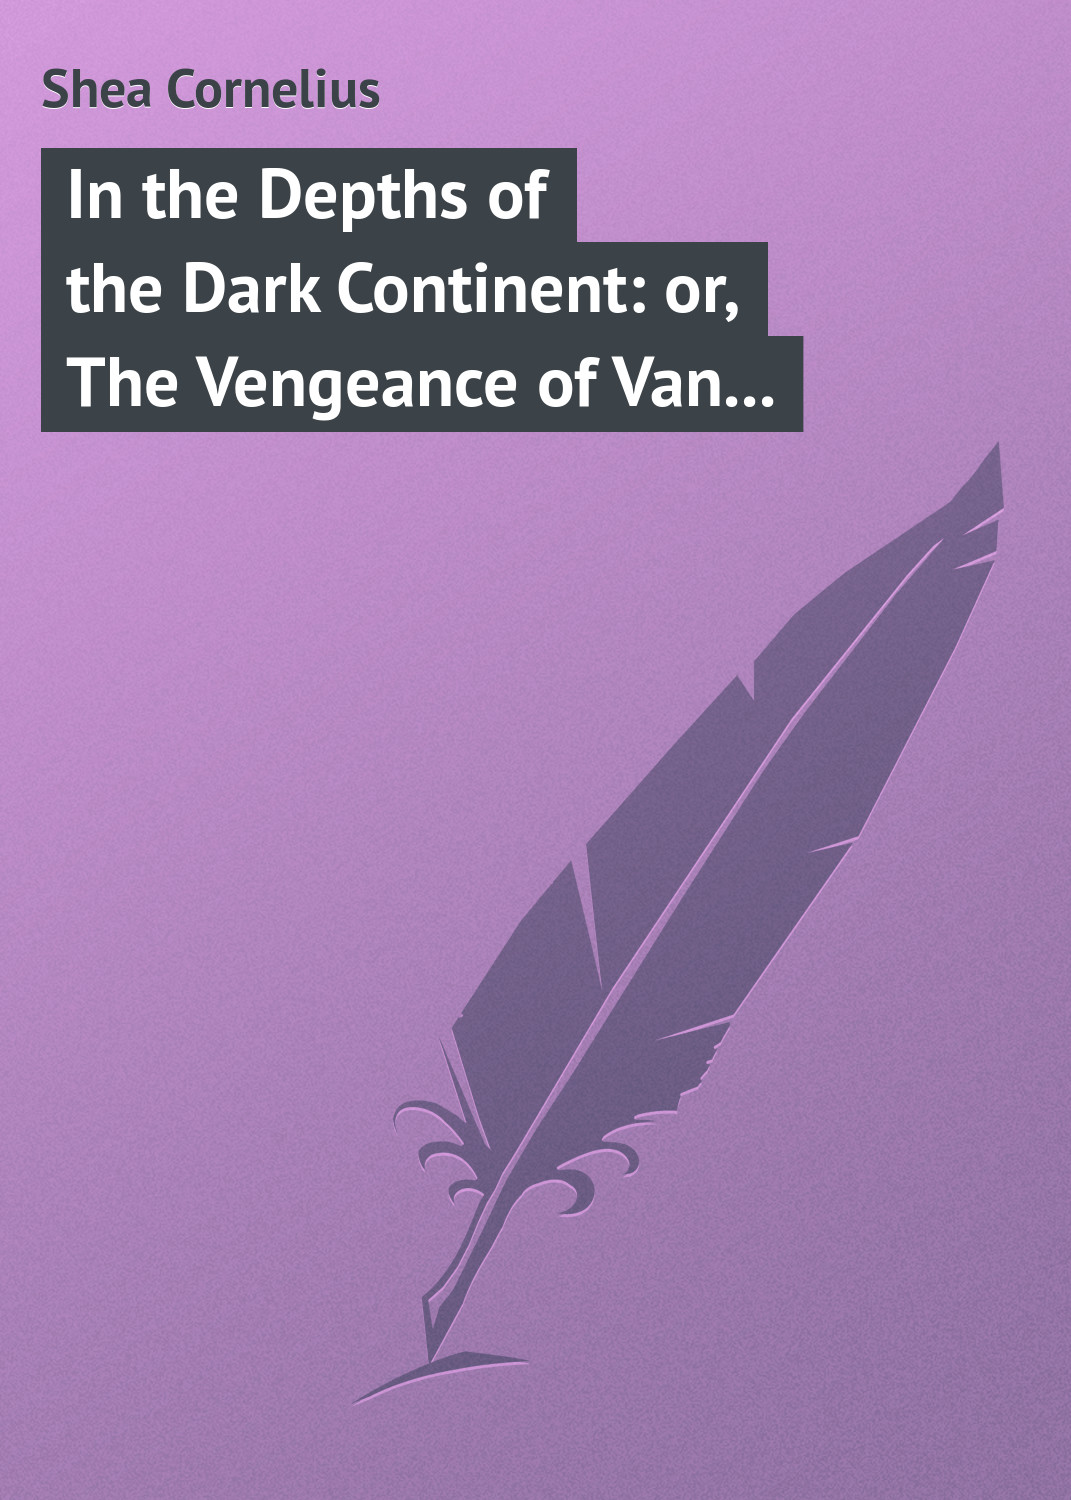 лучшая цена Shea Cornelius In the Depths of the Dark Continent: or, The Vengeance of Van Vincent